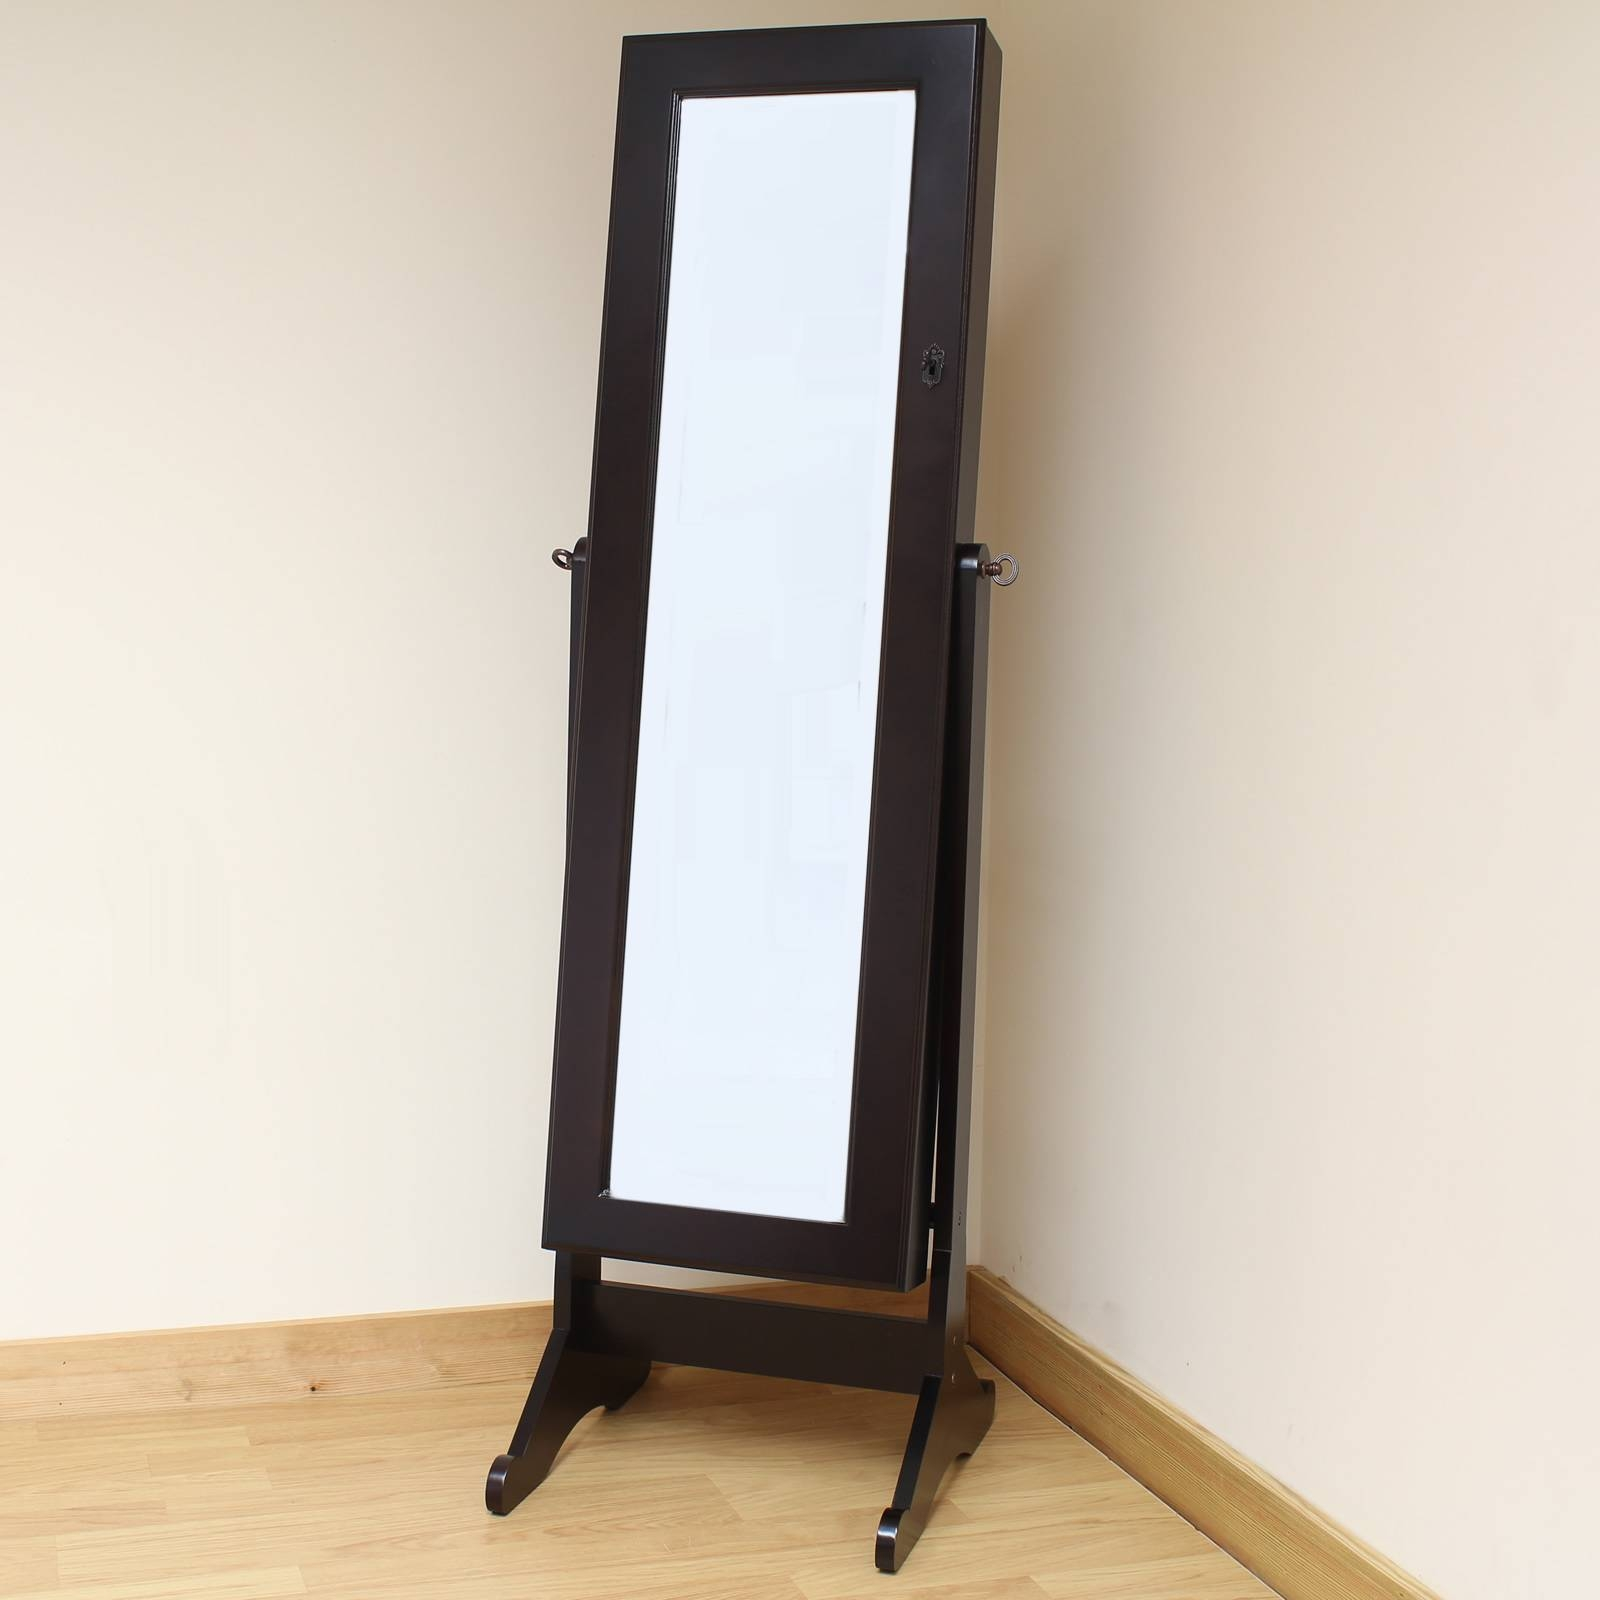 Homeware: Oval Full Length Standing Mirror | Large Floor Mirrors inside Cream Standing Mirrors (Image 20 of 25)